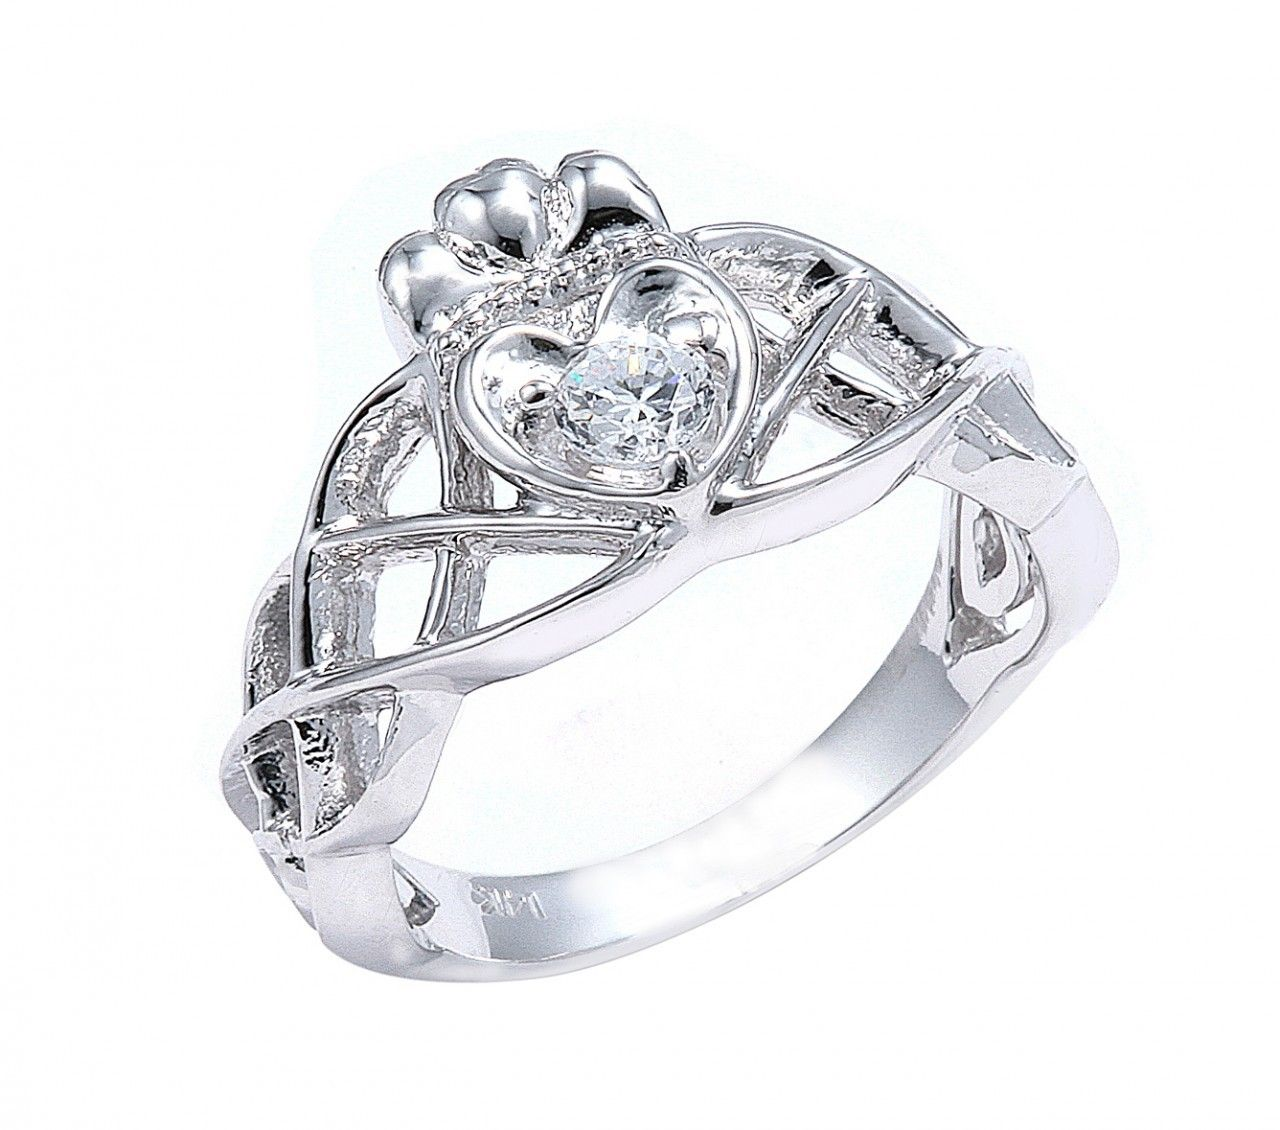 zales womens wedding rings Zales Diamond Engagement Rings The Diamond Claddagh And Zales Mens Wedding Rings Irish Claddagh